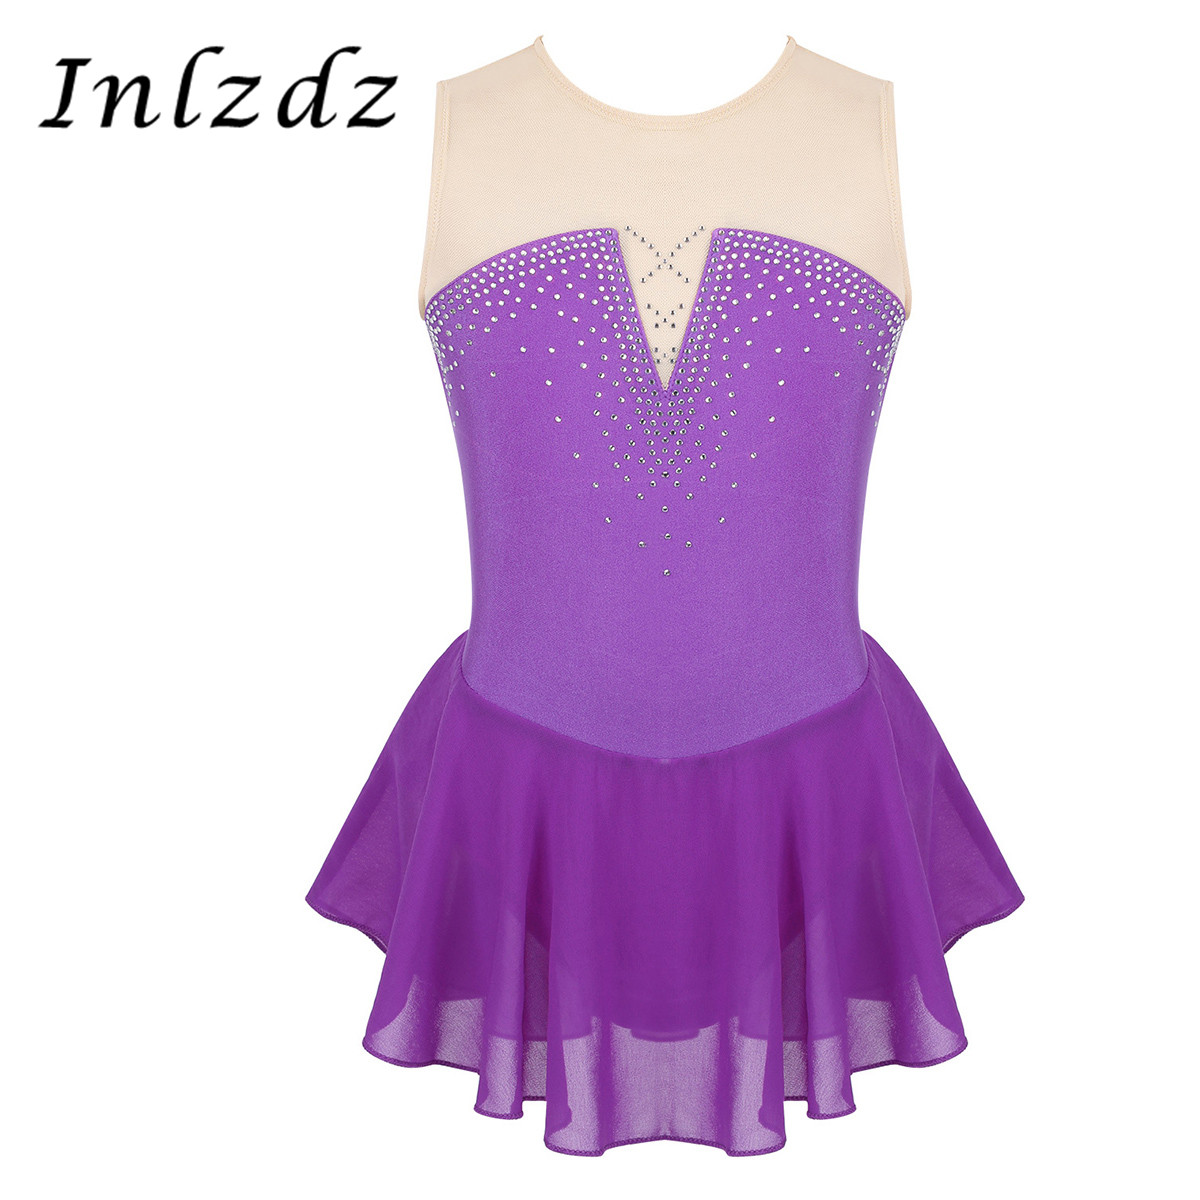 Kids Girls Gymnastics Swimsuit For Dancing Ballet Leotard Costume Sparkly Rhinestone Mesh Splice Skating Ballet Tutu Dance Dress